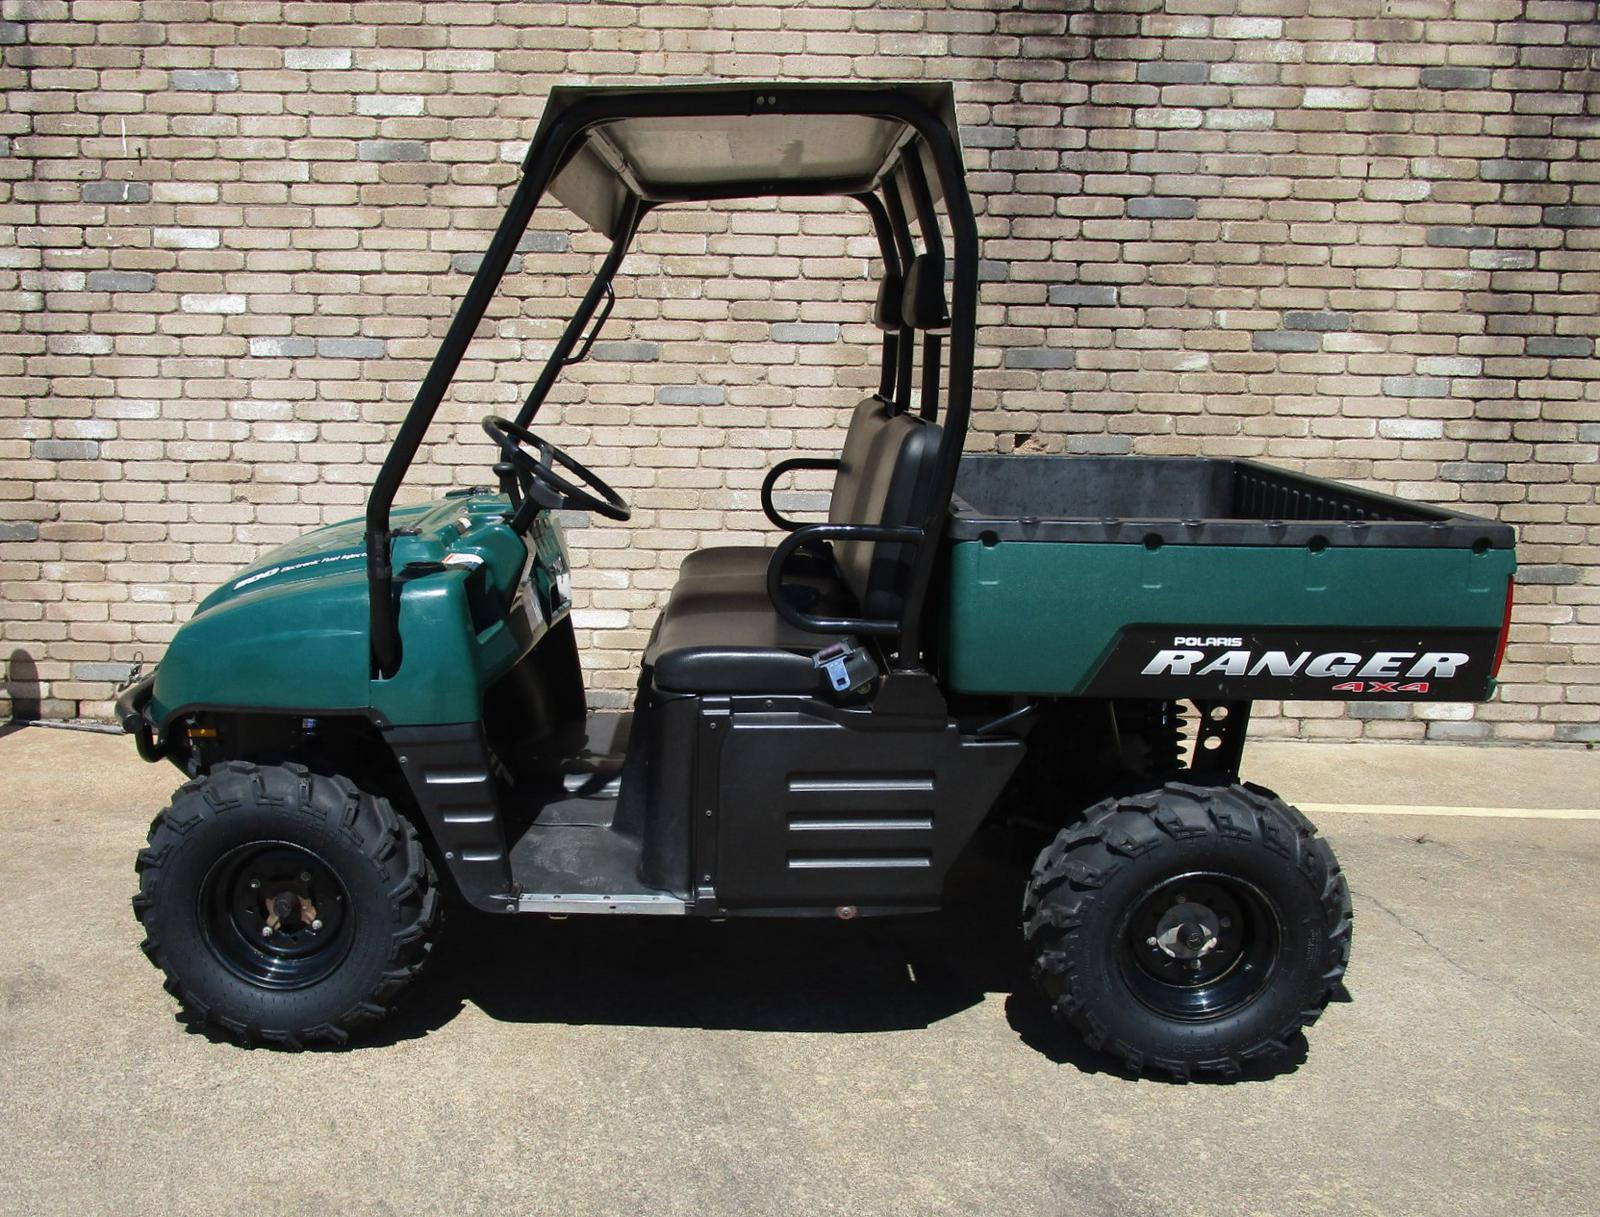 2008 polaris ranger 500 top speed